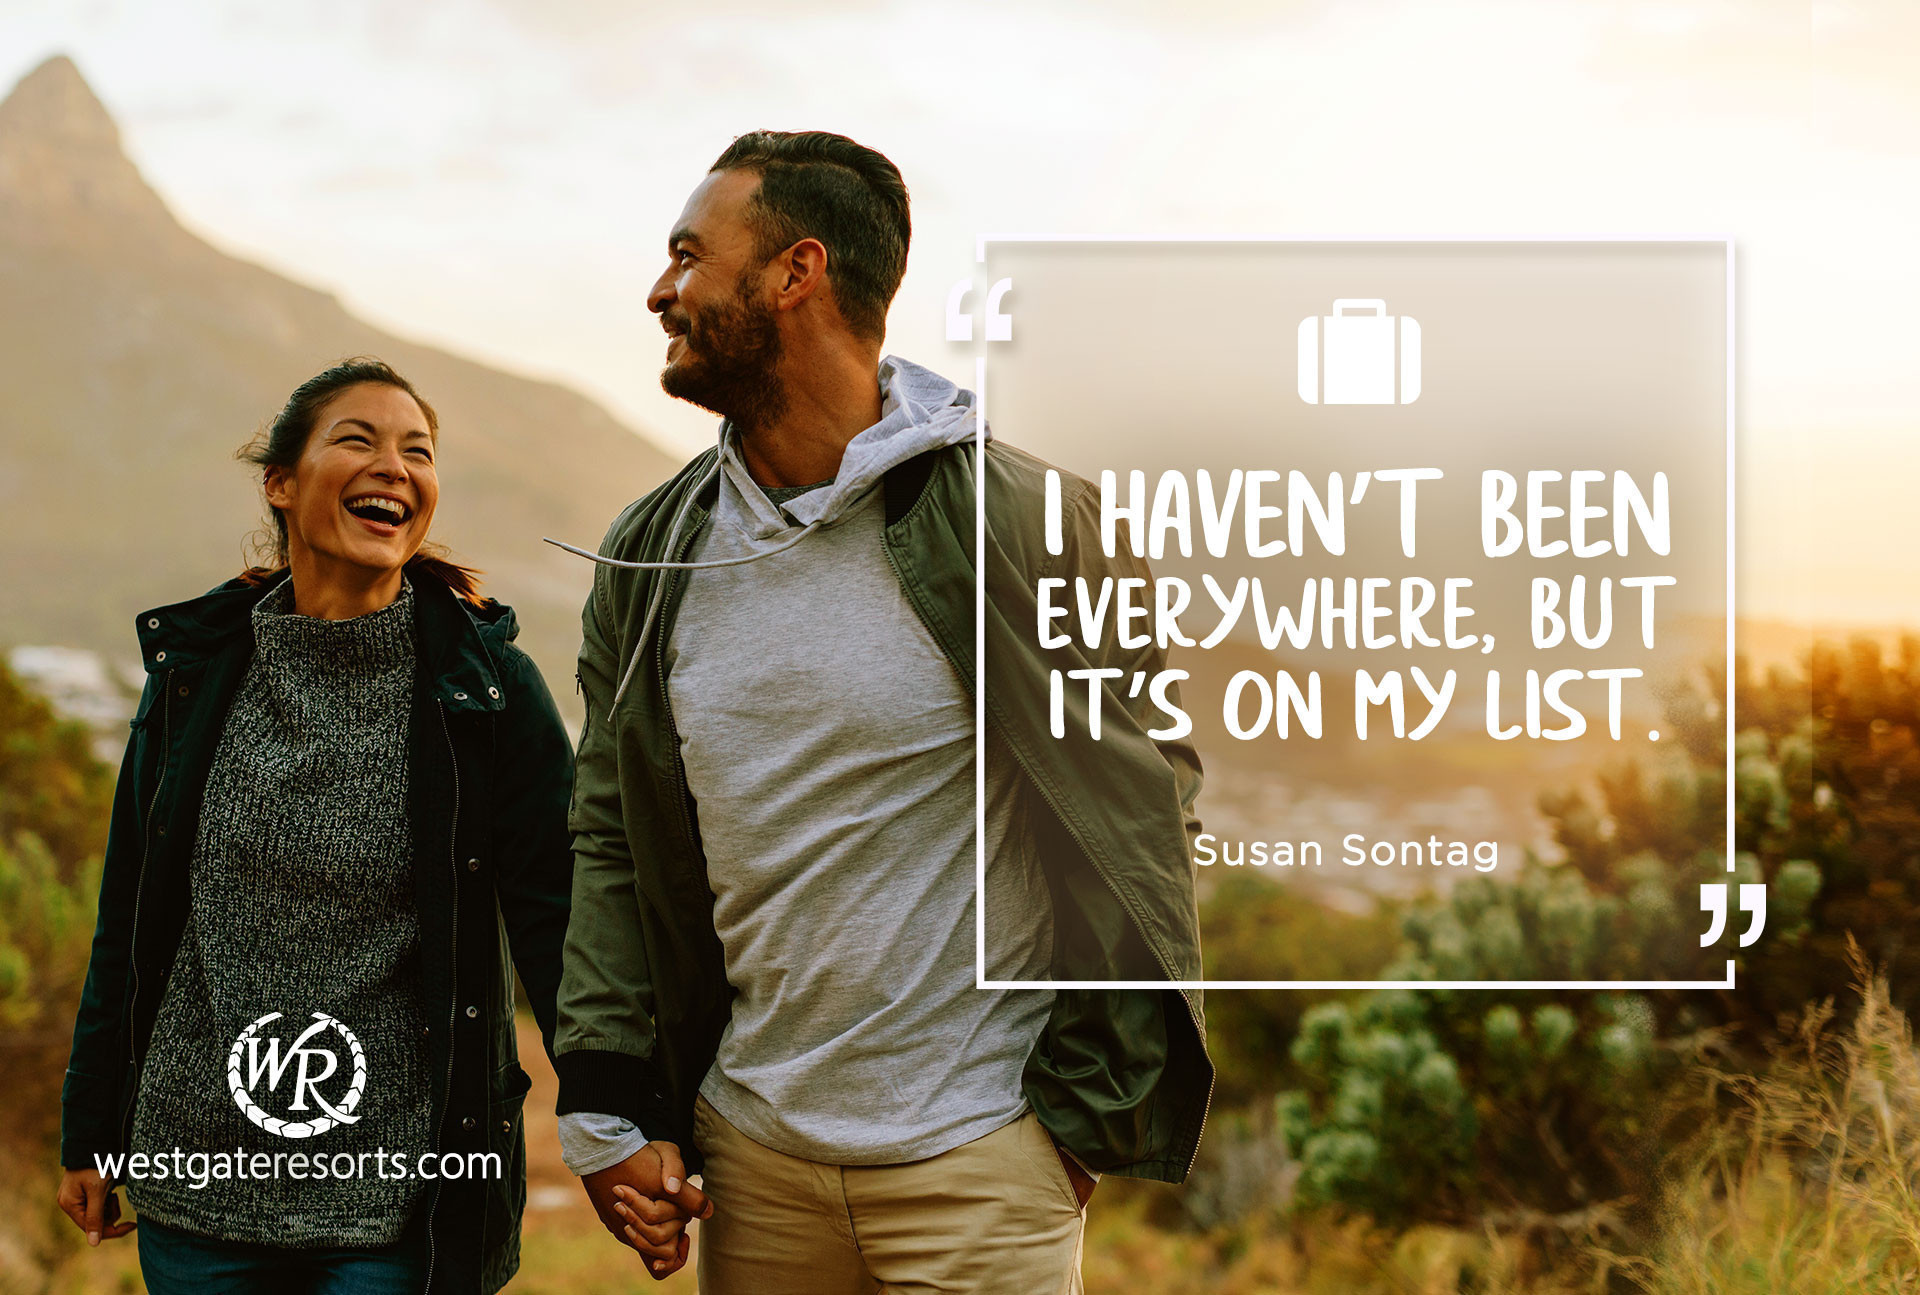 I Haven't Been Everywhere, But It's On My List. | Travel Motivational Quotes | Quotes About Travel by Susan Sontag